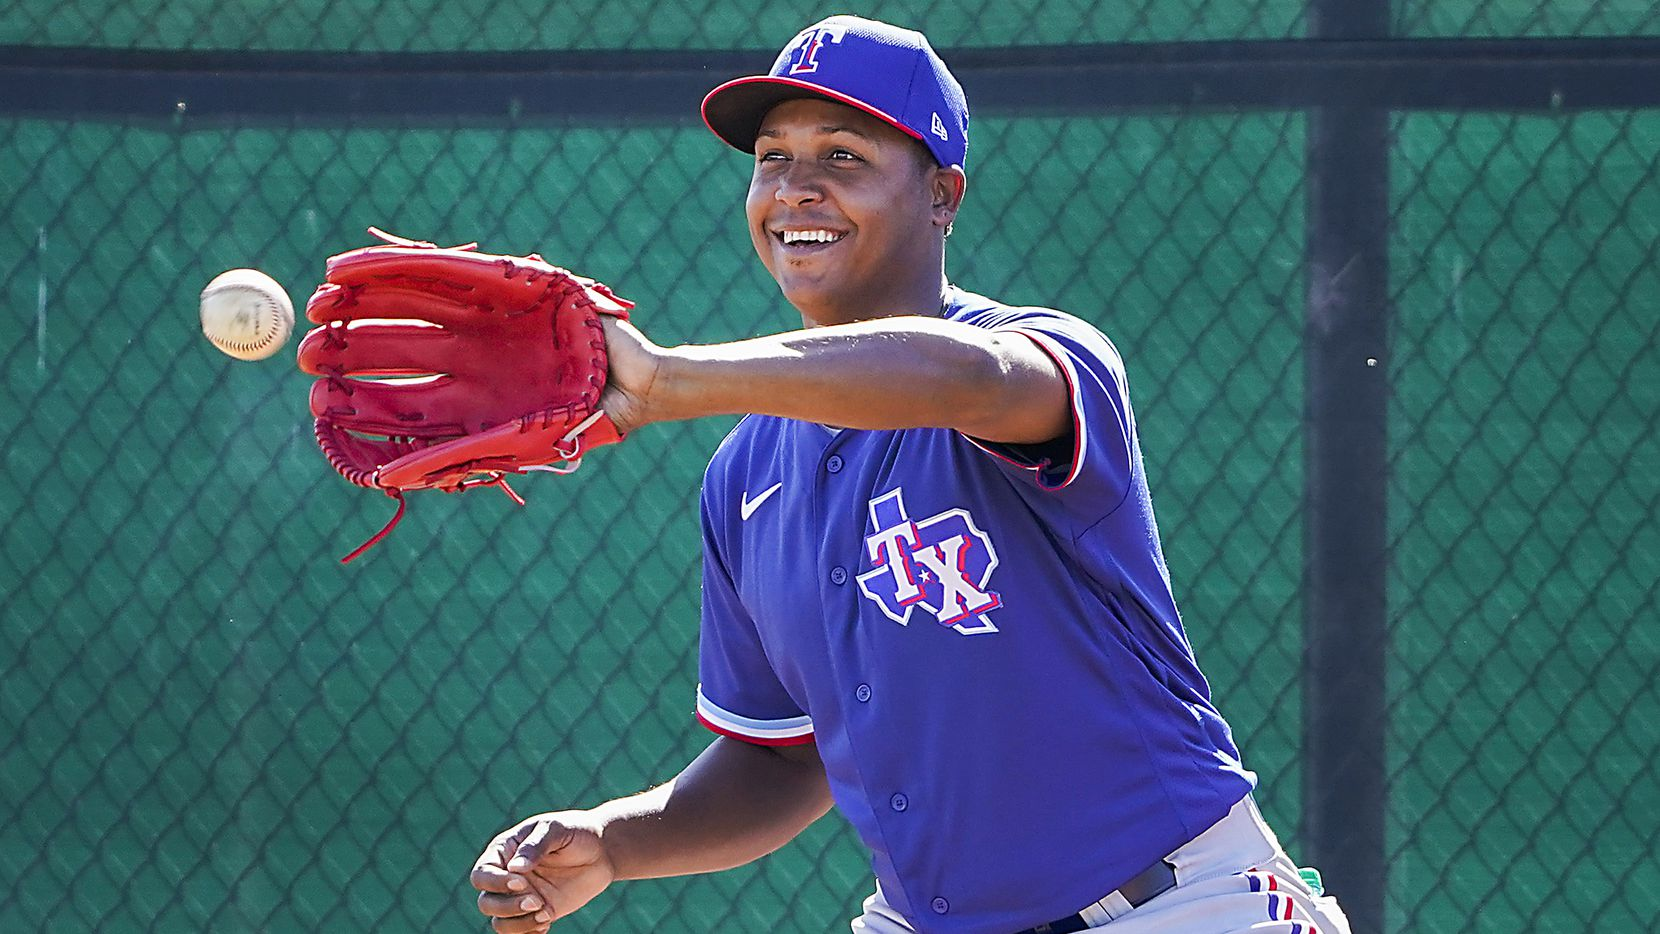 Texas Rangers pitcher Jose Leclerc participates in a fielding drill during a spring training workout at the team's training facility on Saturday, Feb. 15, 2020, in Surprise, Ariz.